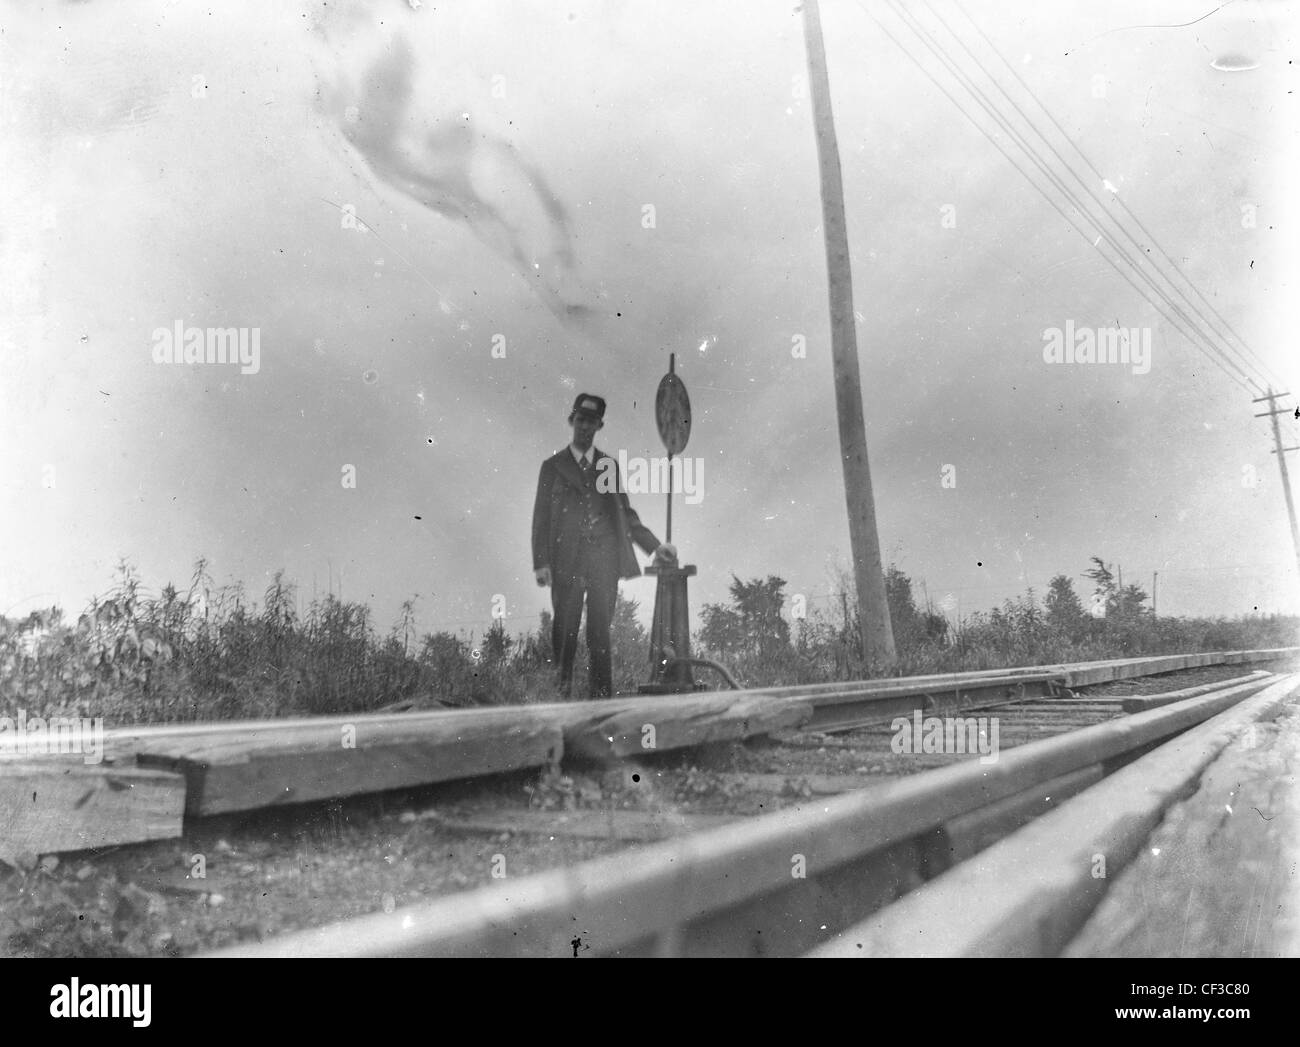 Railroad brake man worker standing next to tracks turn of the century 19th 1800s glass plate negative rails transportation - Stock Image